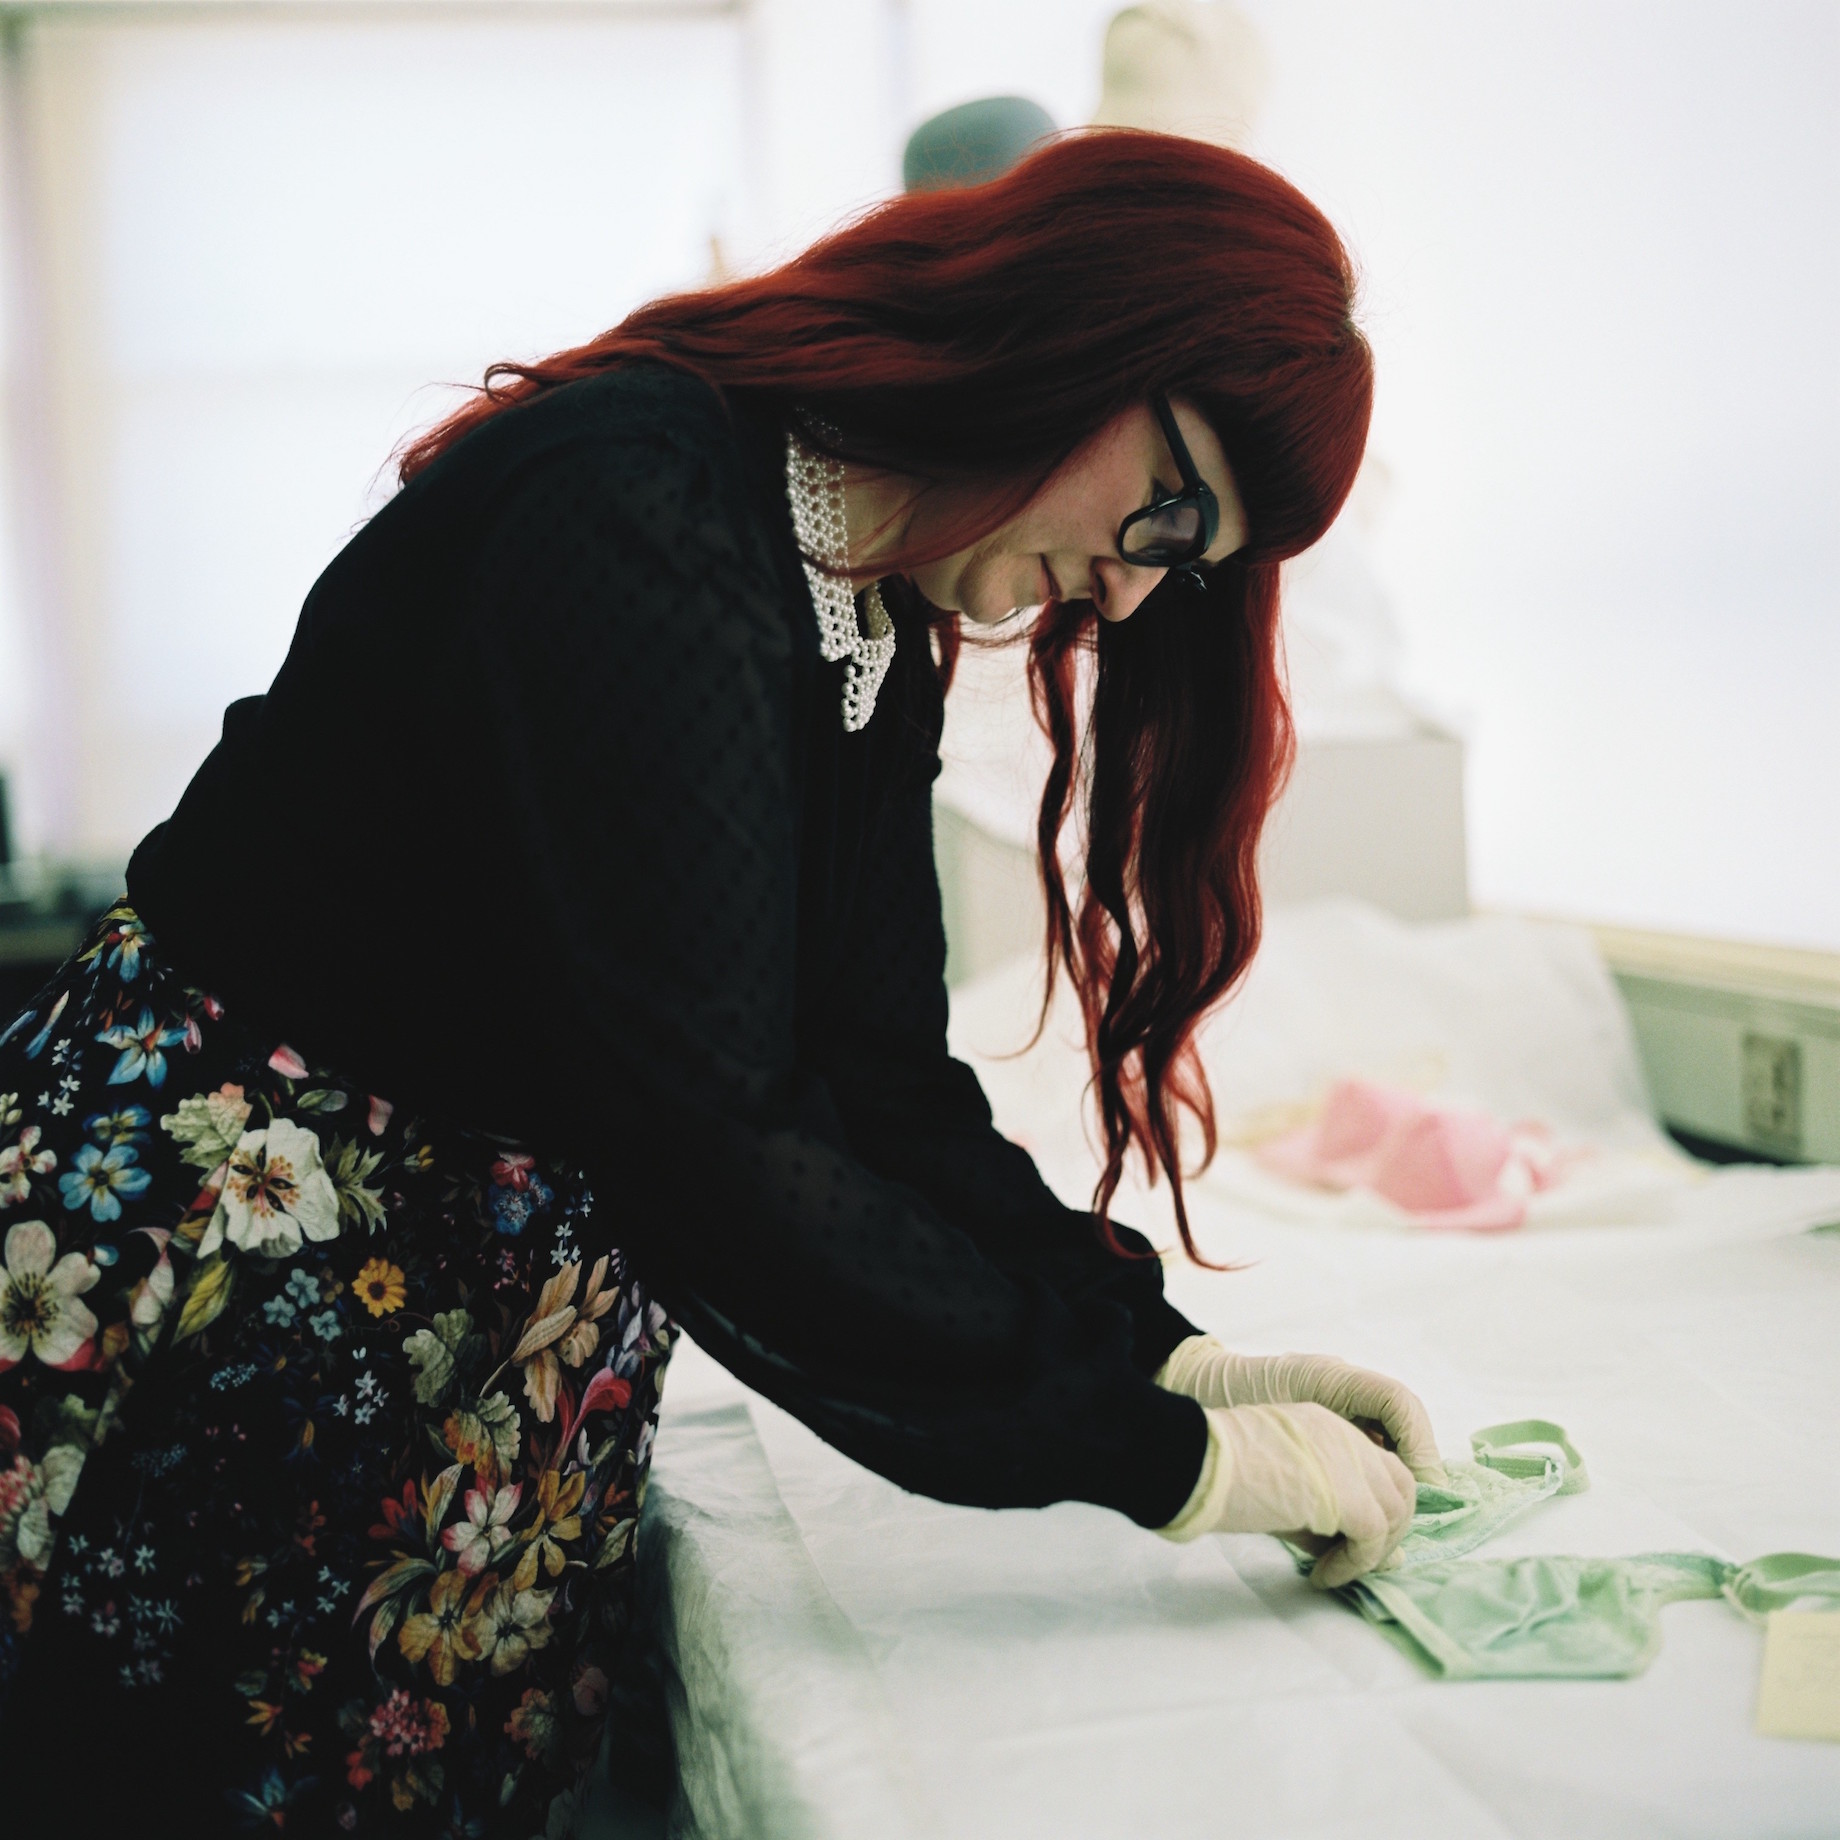 Handling objects in the London College of Fashion Archives. Photography by Francesca Tye.